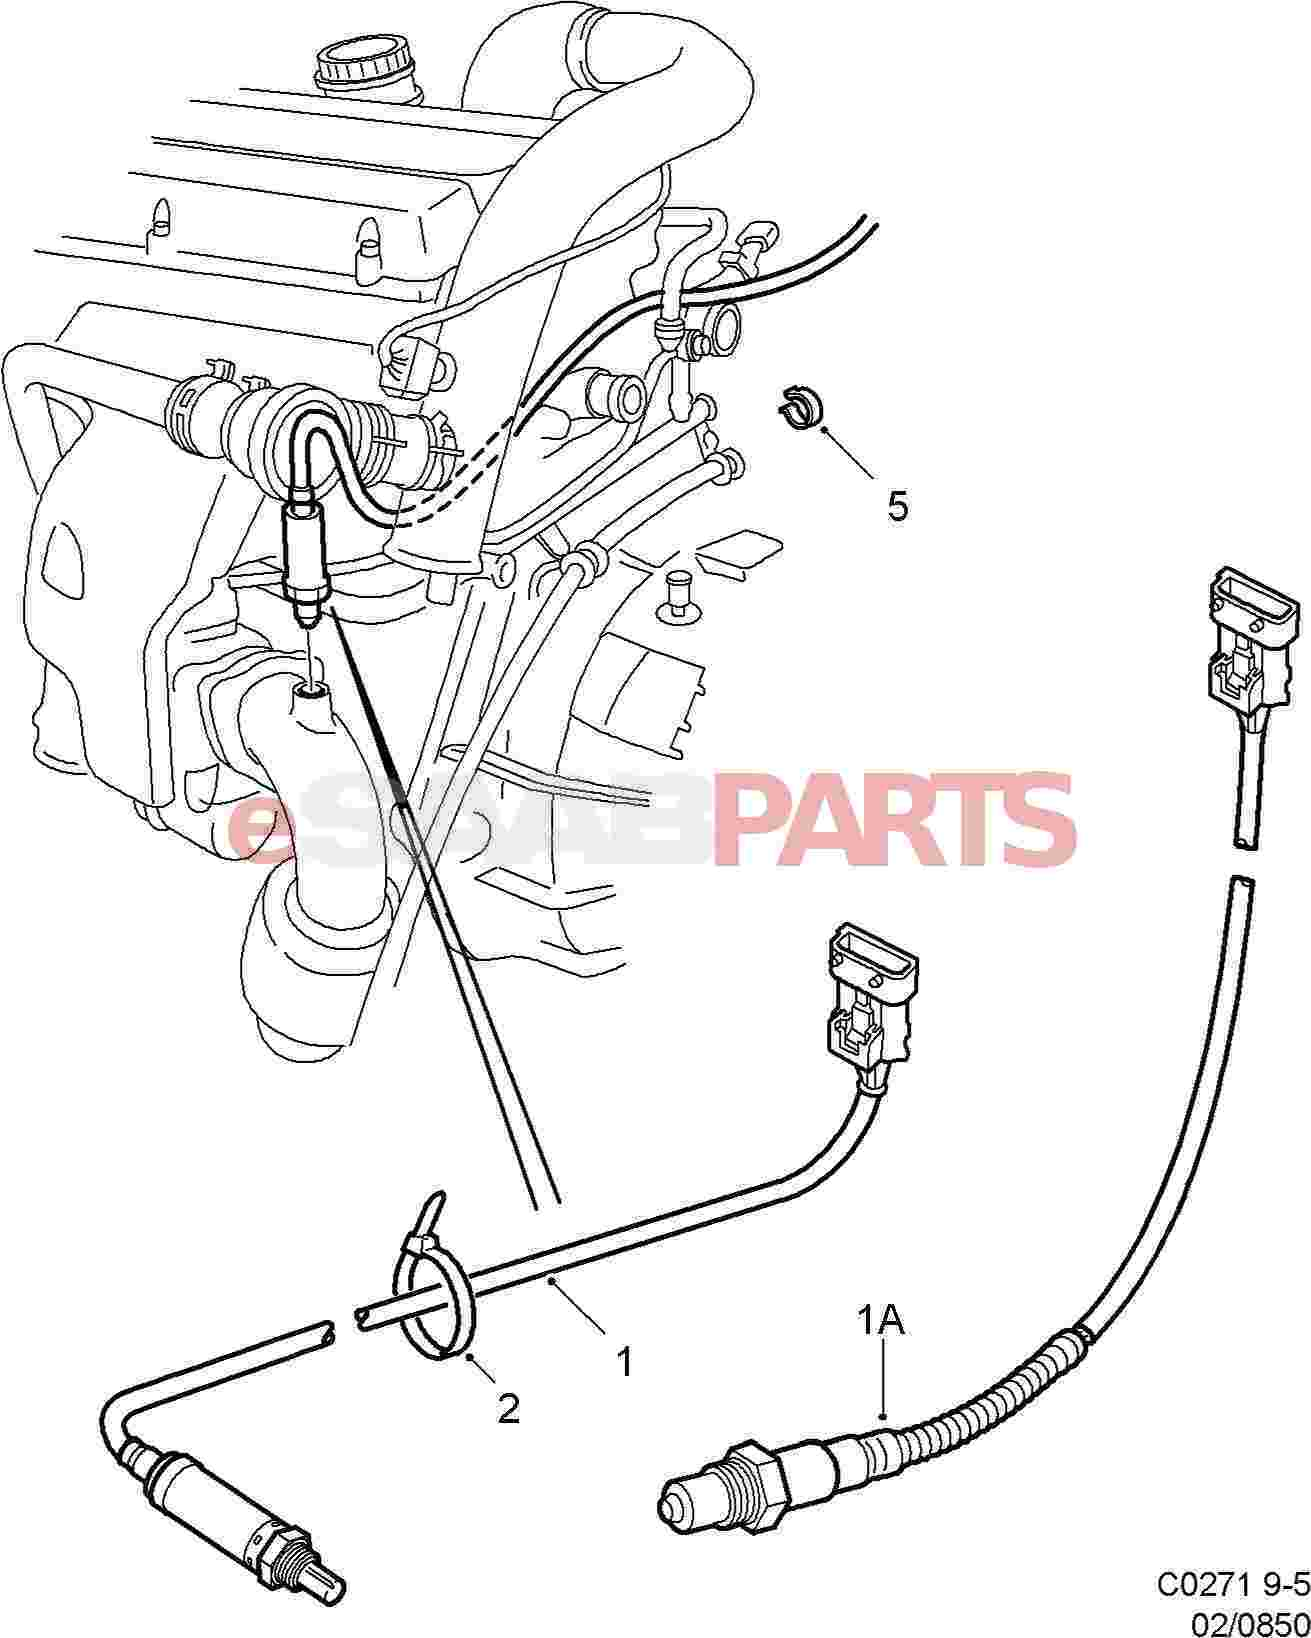 4570917  saab rear heated oxygen sensor